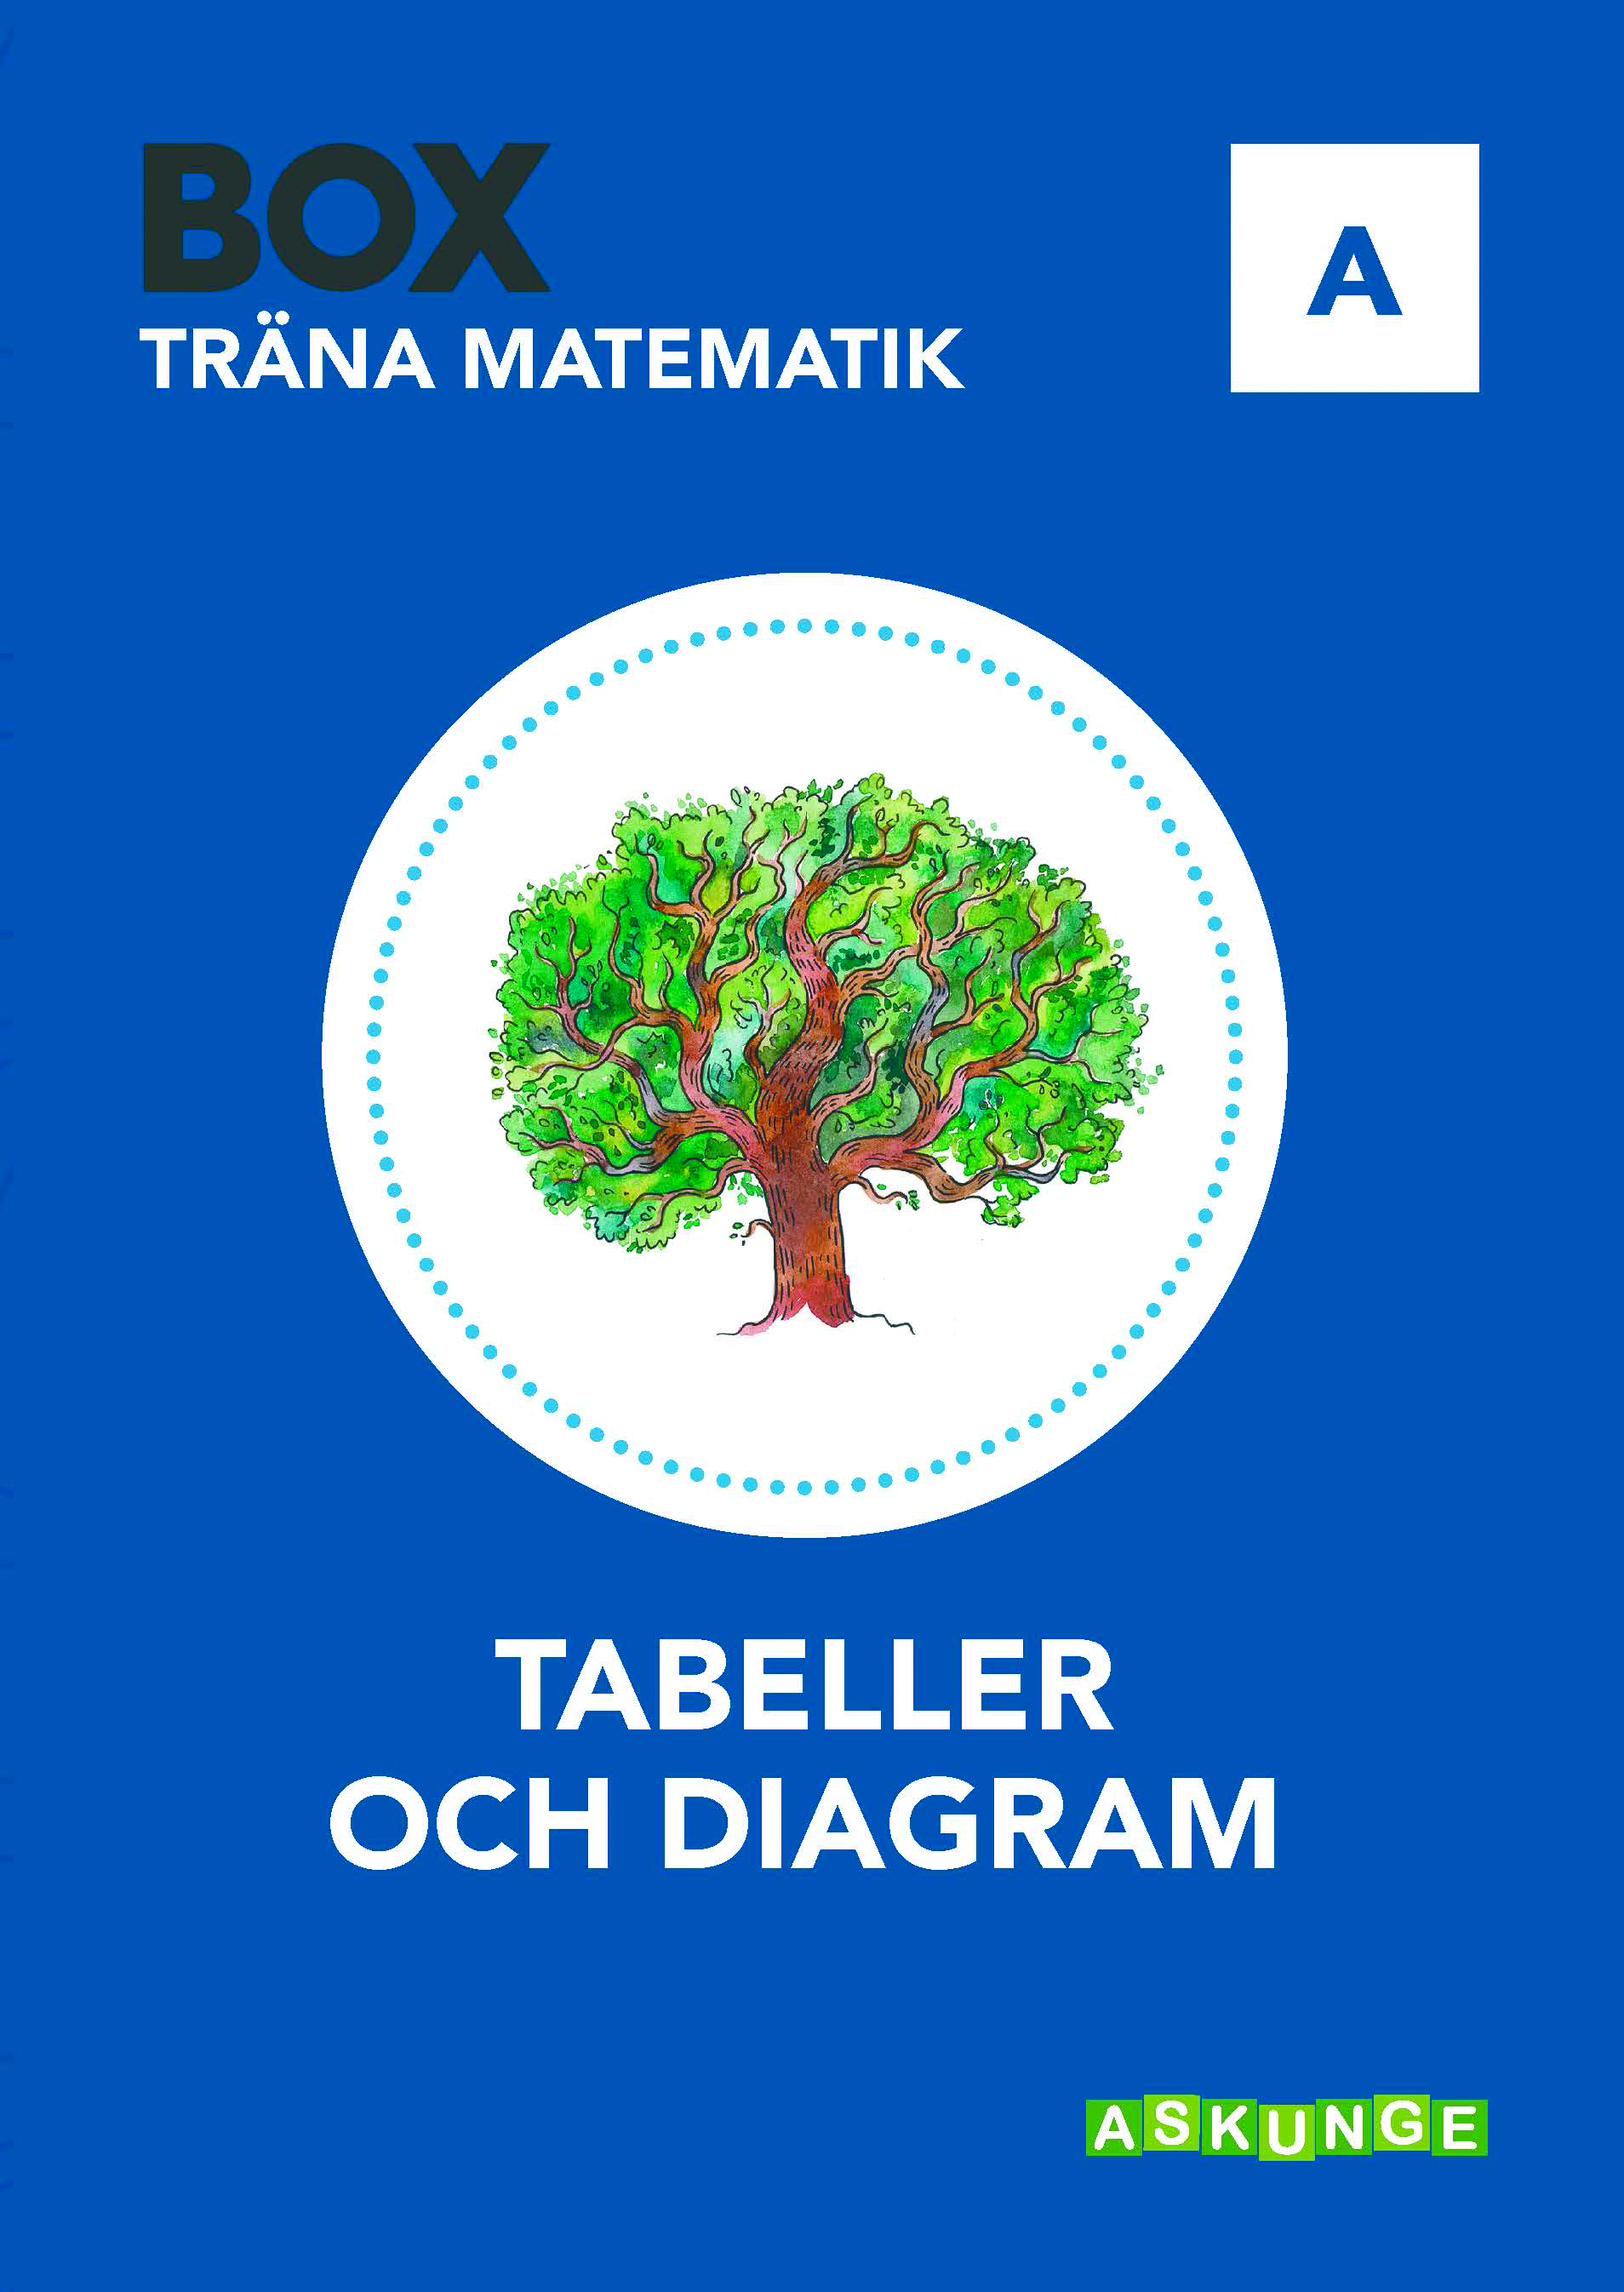 BOX Tabeller och diagram